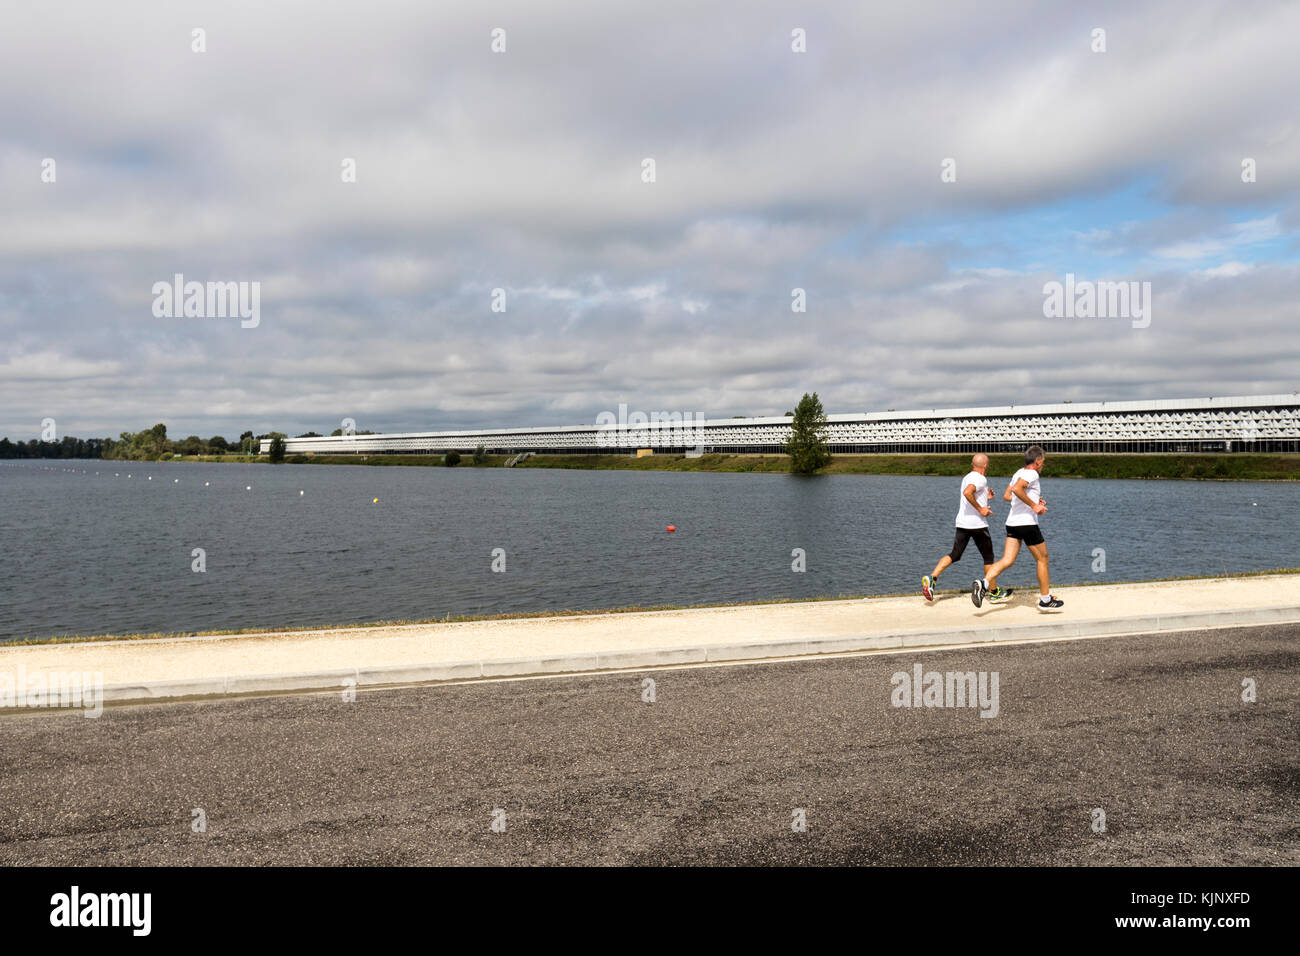 Two runners in the Bordeaux Le Lac, the Lake, and the Bordeaux Exhibtion Centre - Stock Image